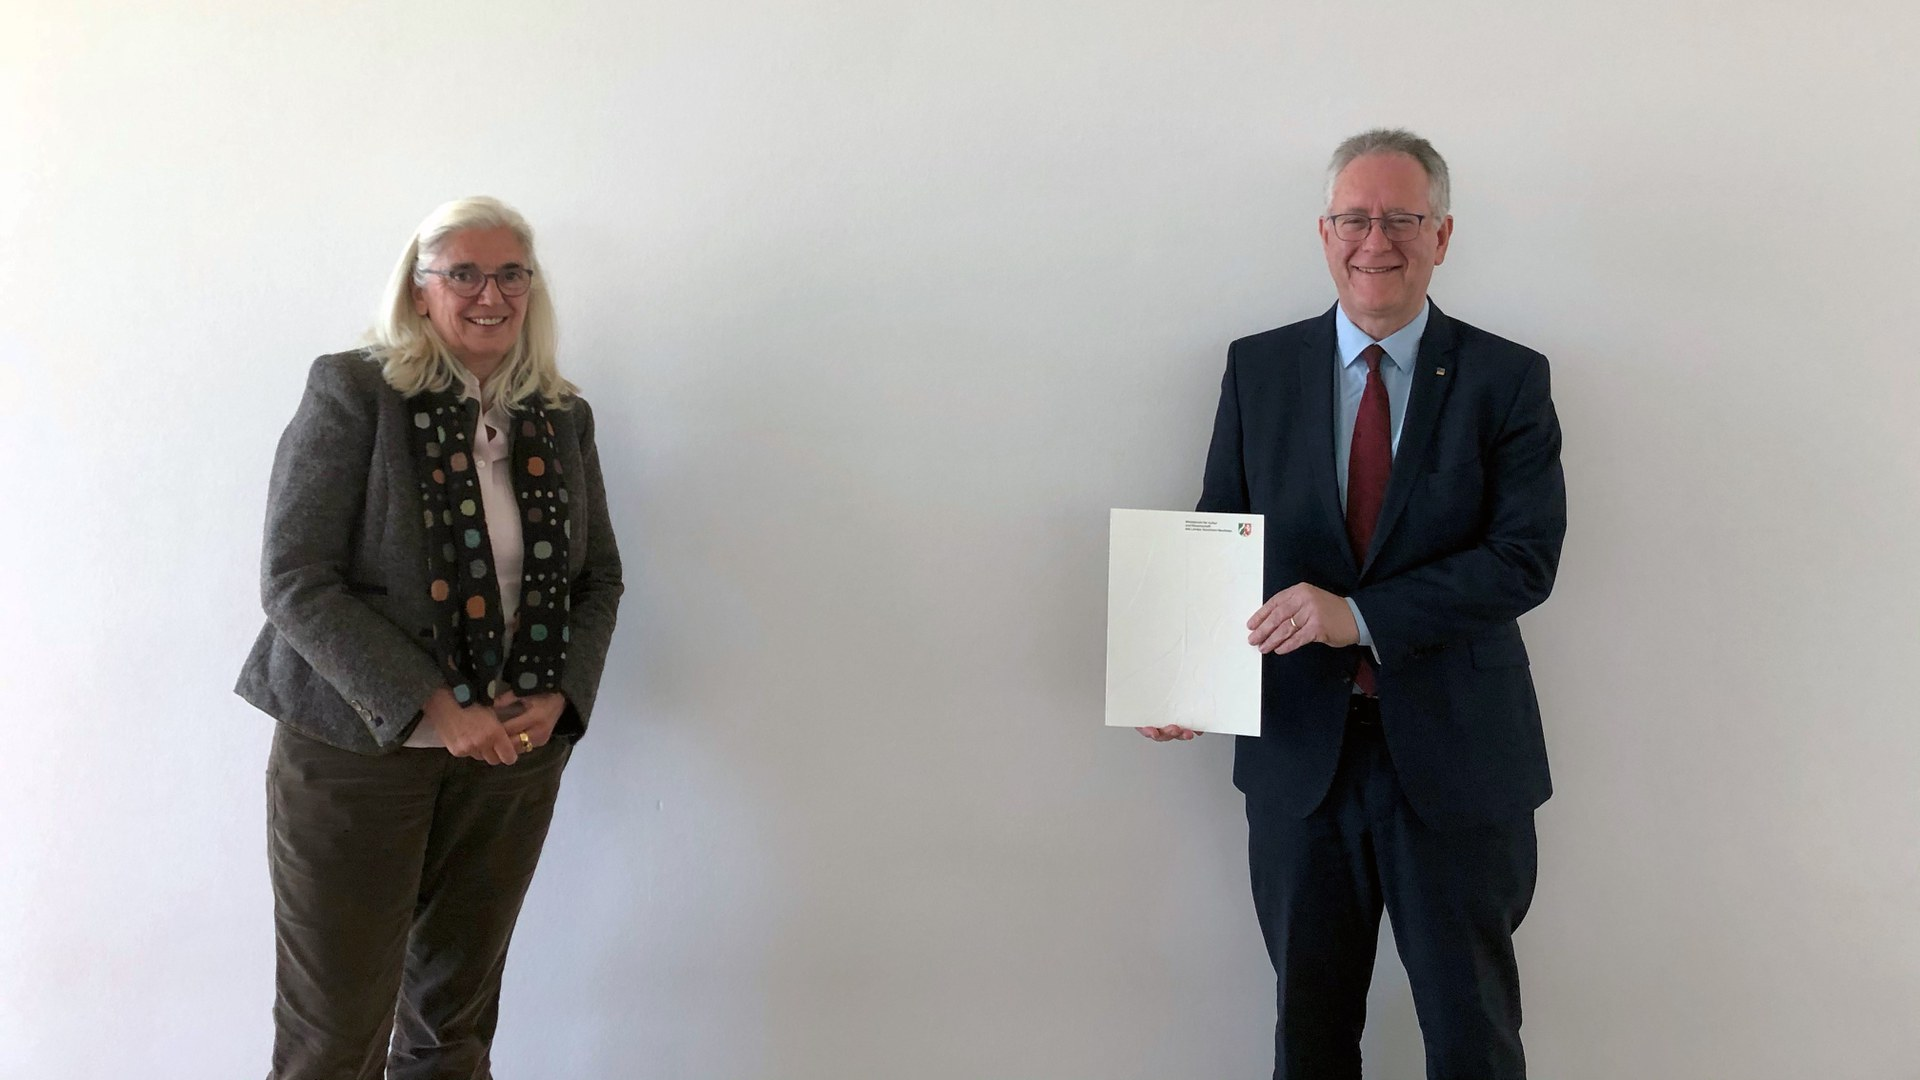 Minister of Science Isabel Pfeiffer-Poensgen and Rector Michael Hoch.